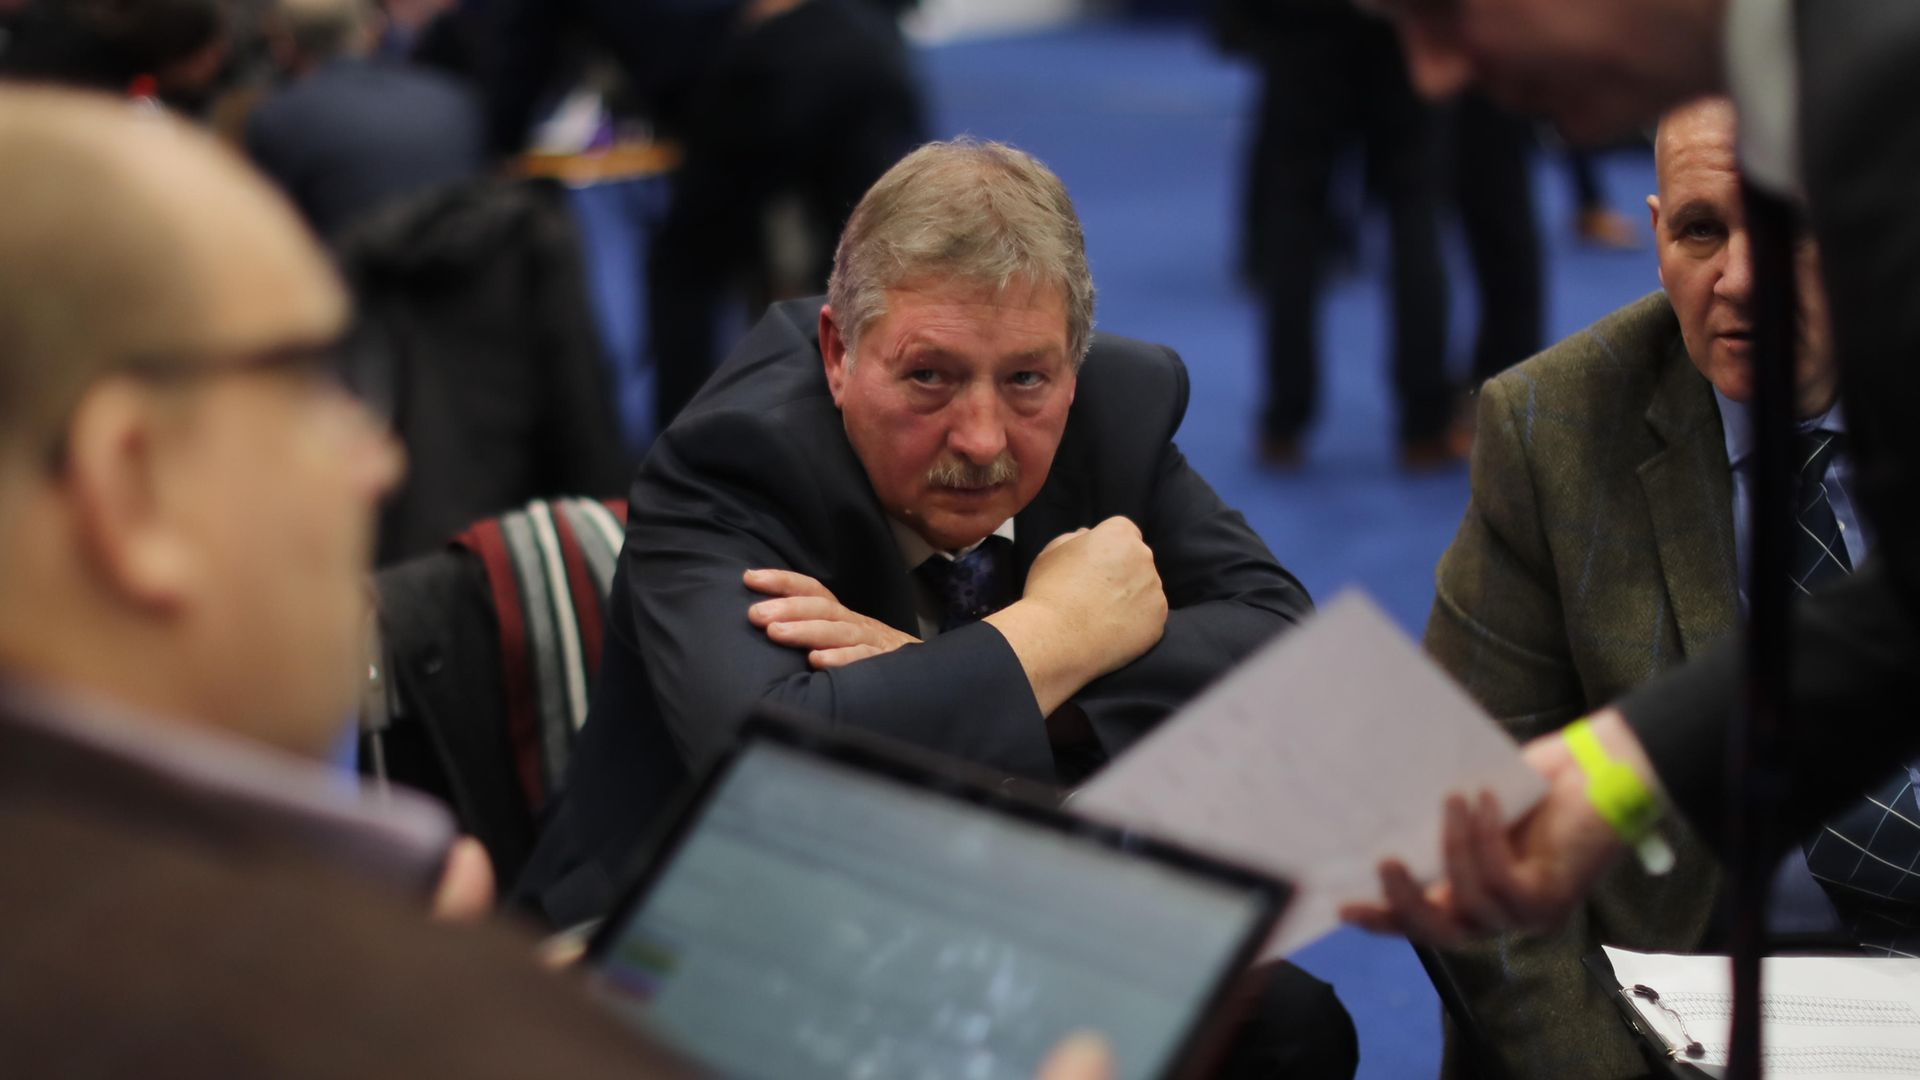 DUP Brexit spokesperson Sammy Wilson has complained the UK is 'like East Germany under the Stasi' after being spotted on public transport without a face mask - Credit: PA